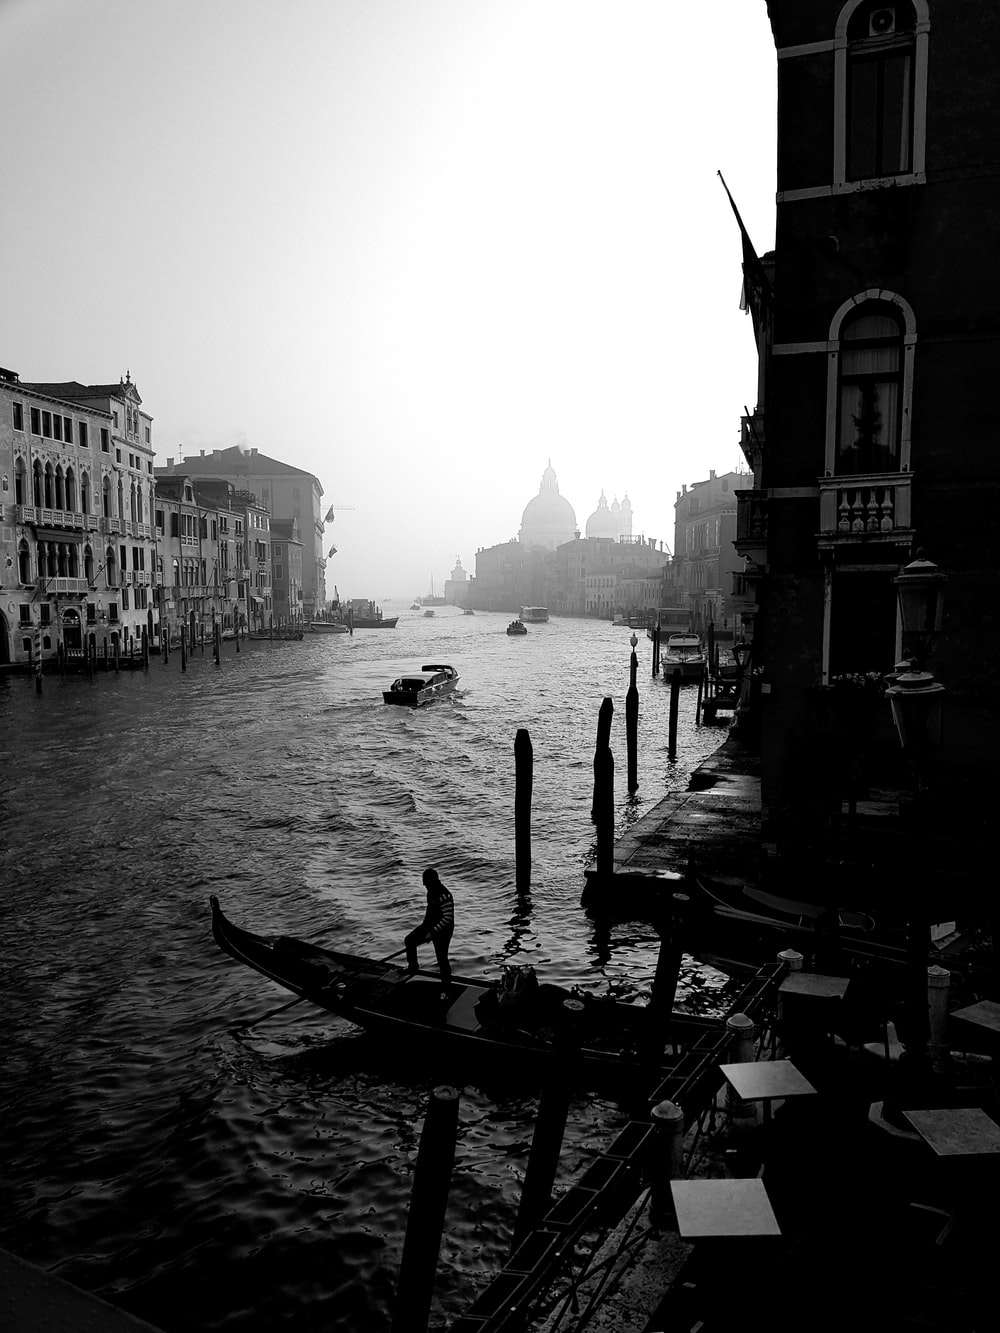 grayscale photography of body of water beside buildings